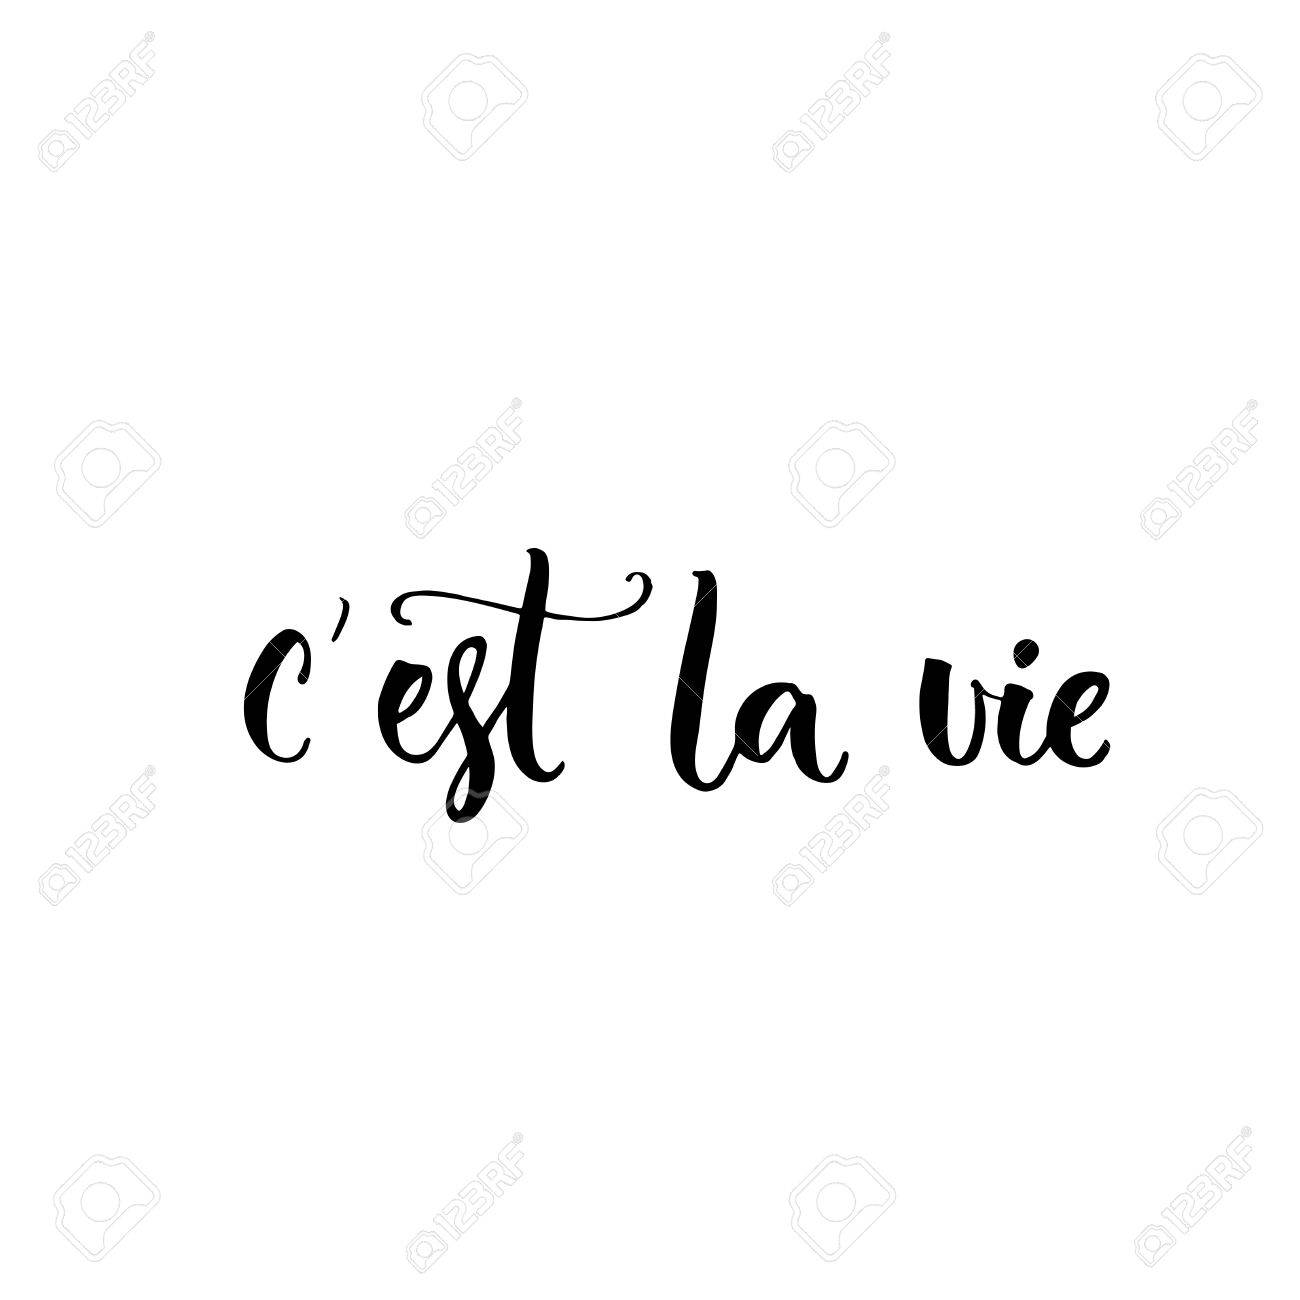 C Stock Quote C'est La Viefrench Phrase Means That's Lifebrush Lettering